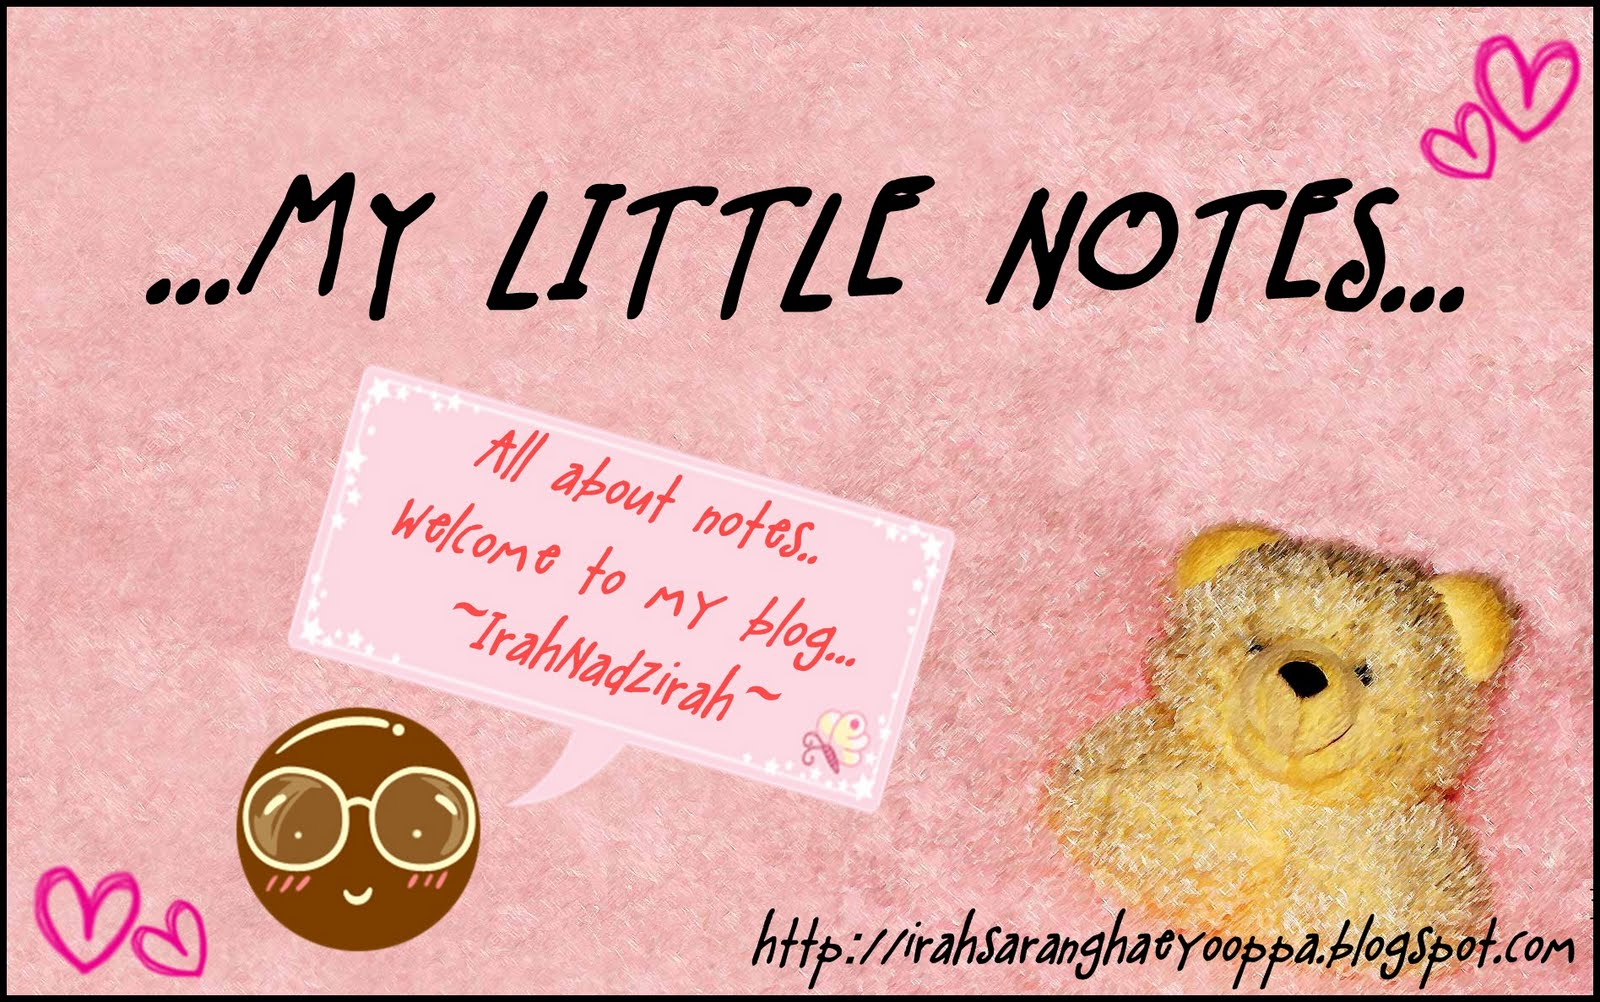 ♪♫♫♪♫♪✿❤ ~...My LittLe NoTes...~ ❤✿♫♪♫♪♪♫